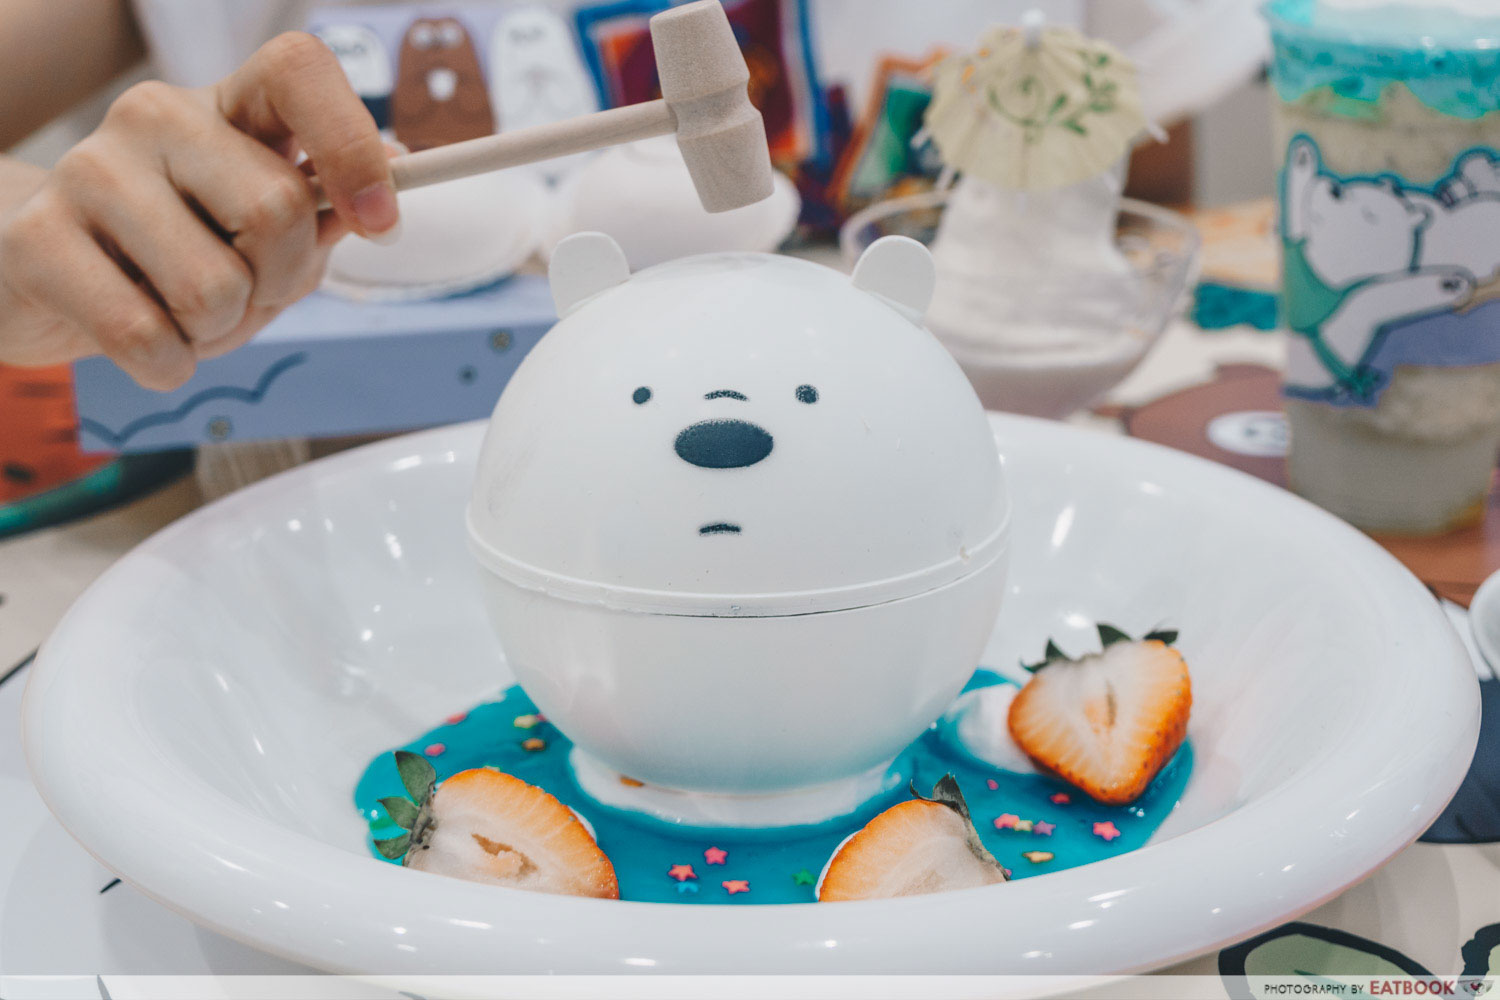 We Bare Bears Cafe - Knock knock Ice Bear Chocolate Ball